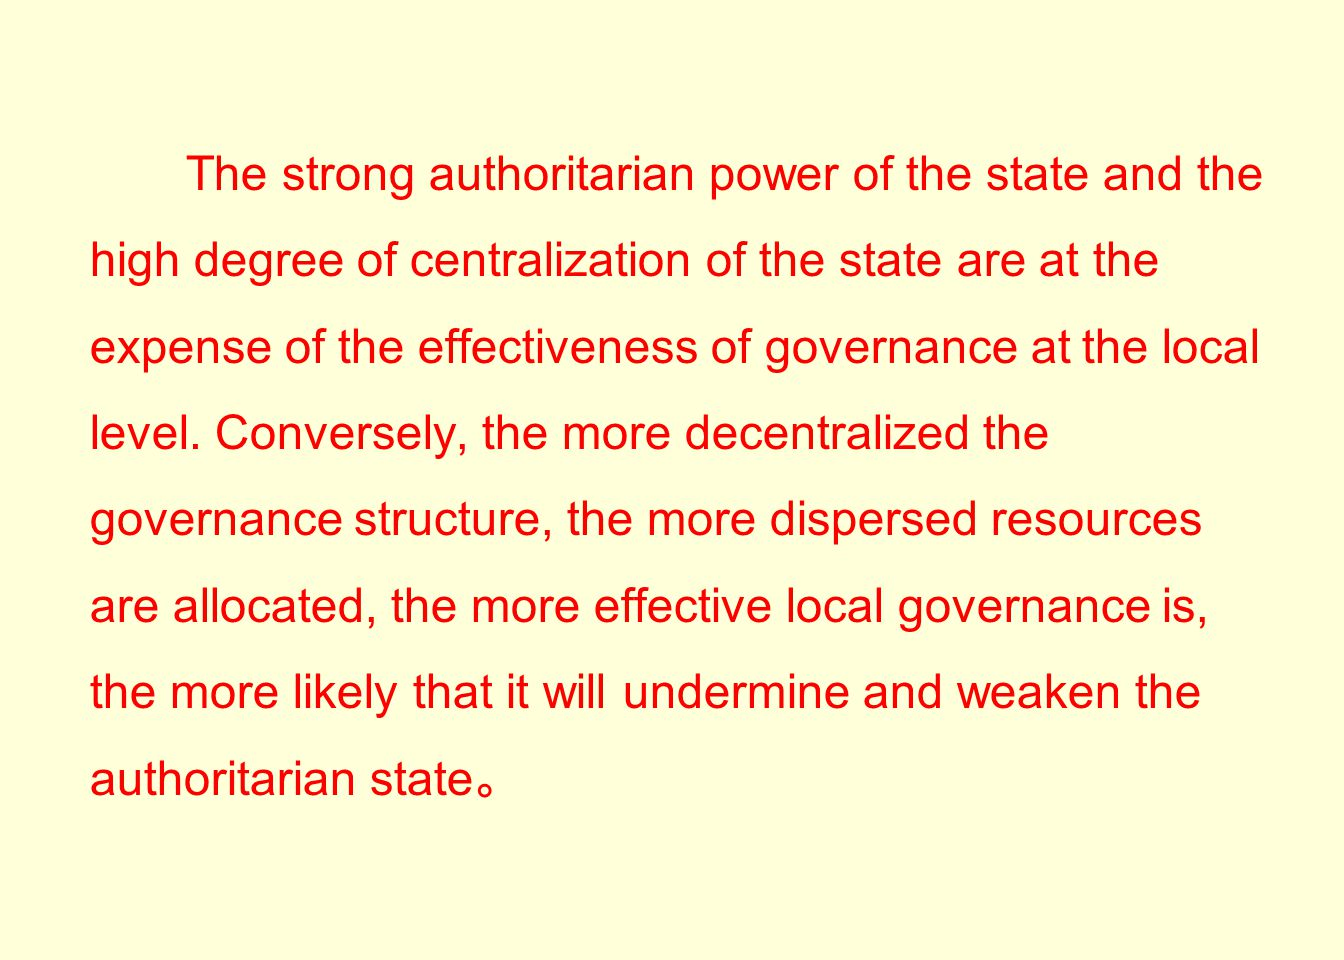 The strong authoritarian power of the state and the high degree of centralization of the state are at the expense of the effectiveness of governance at the local level.